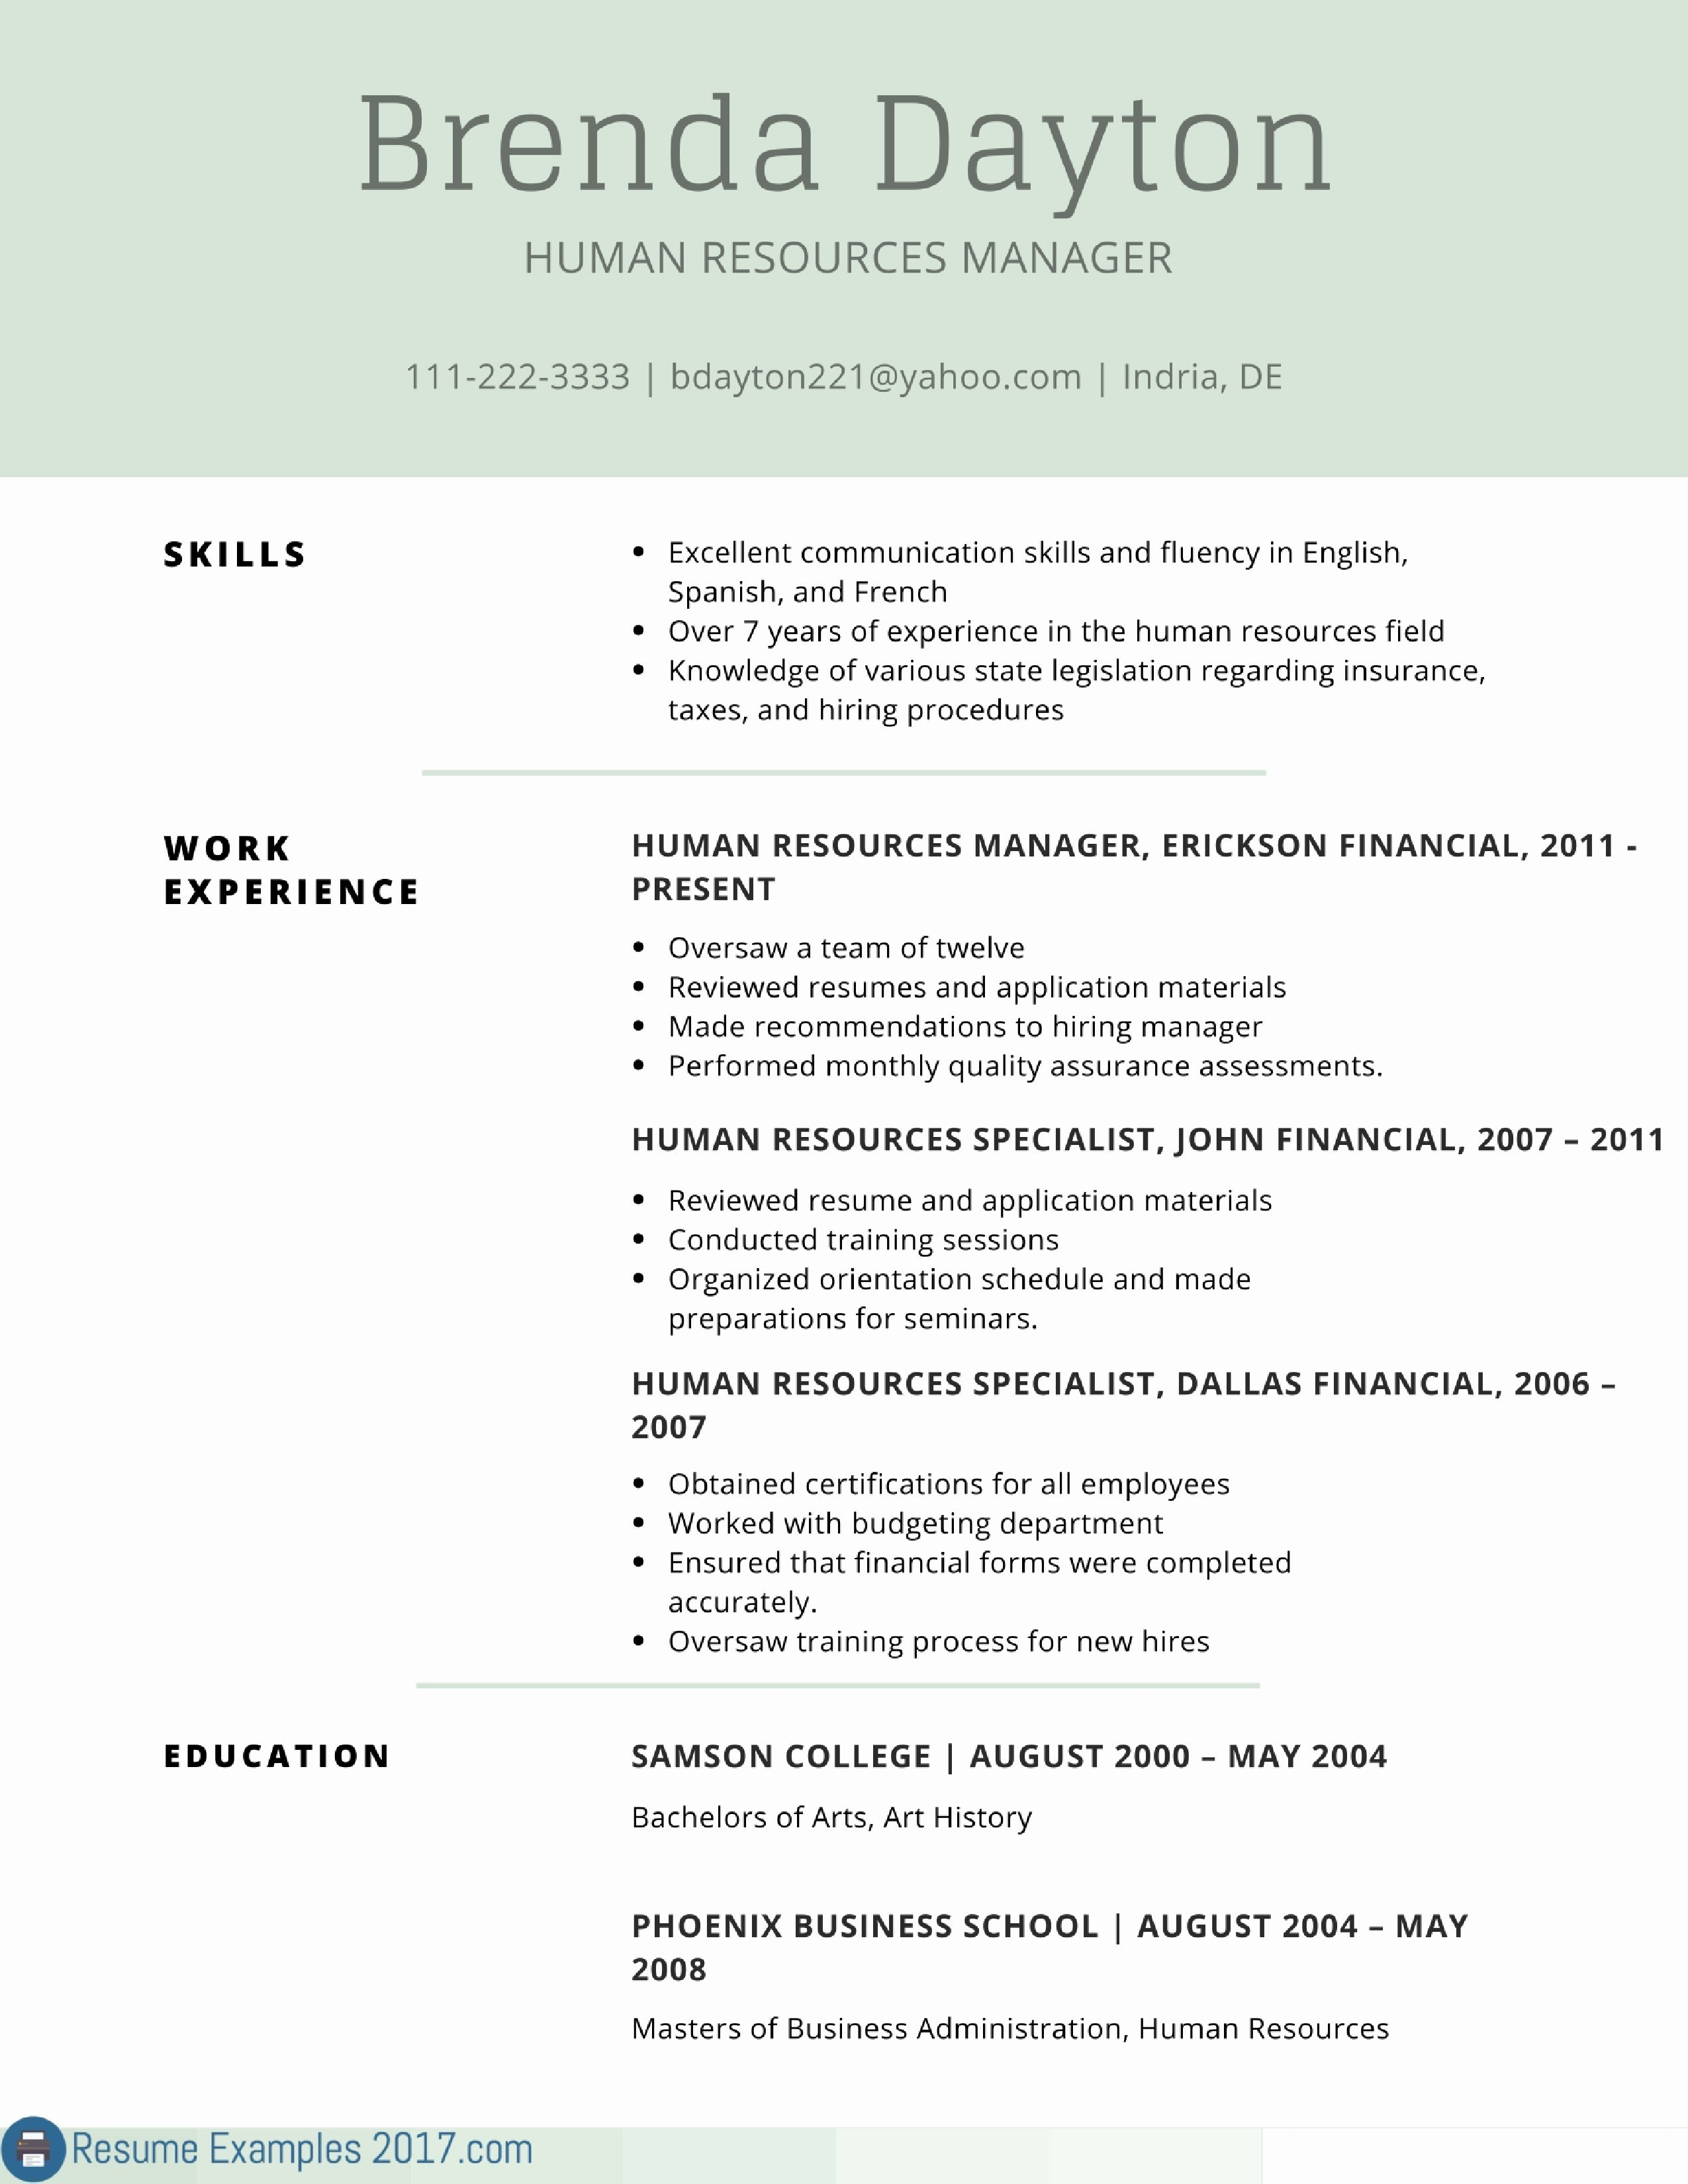 Brand Ambassador Resume Template - Books Resume Writing and Cover Letter Likeable top Examples